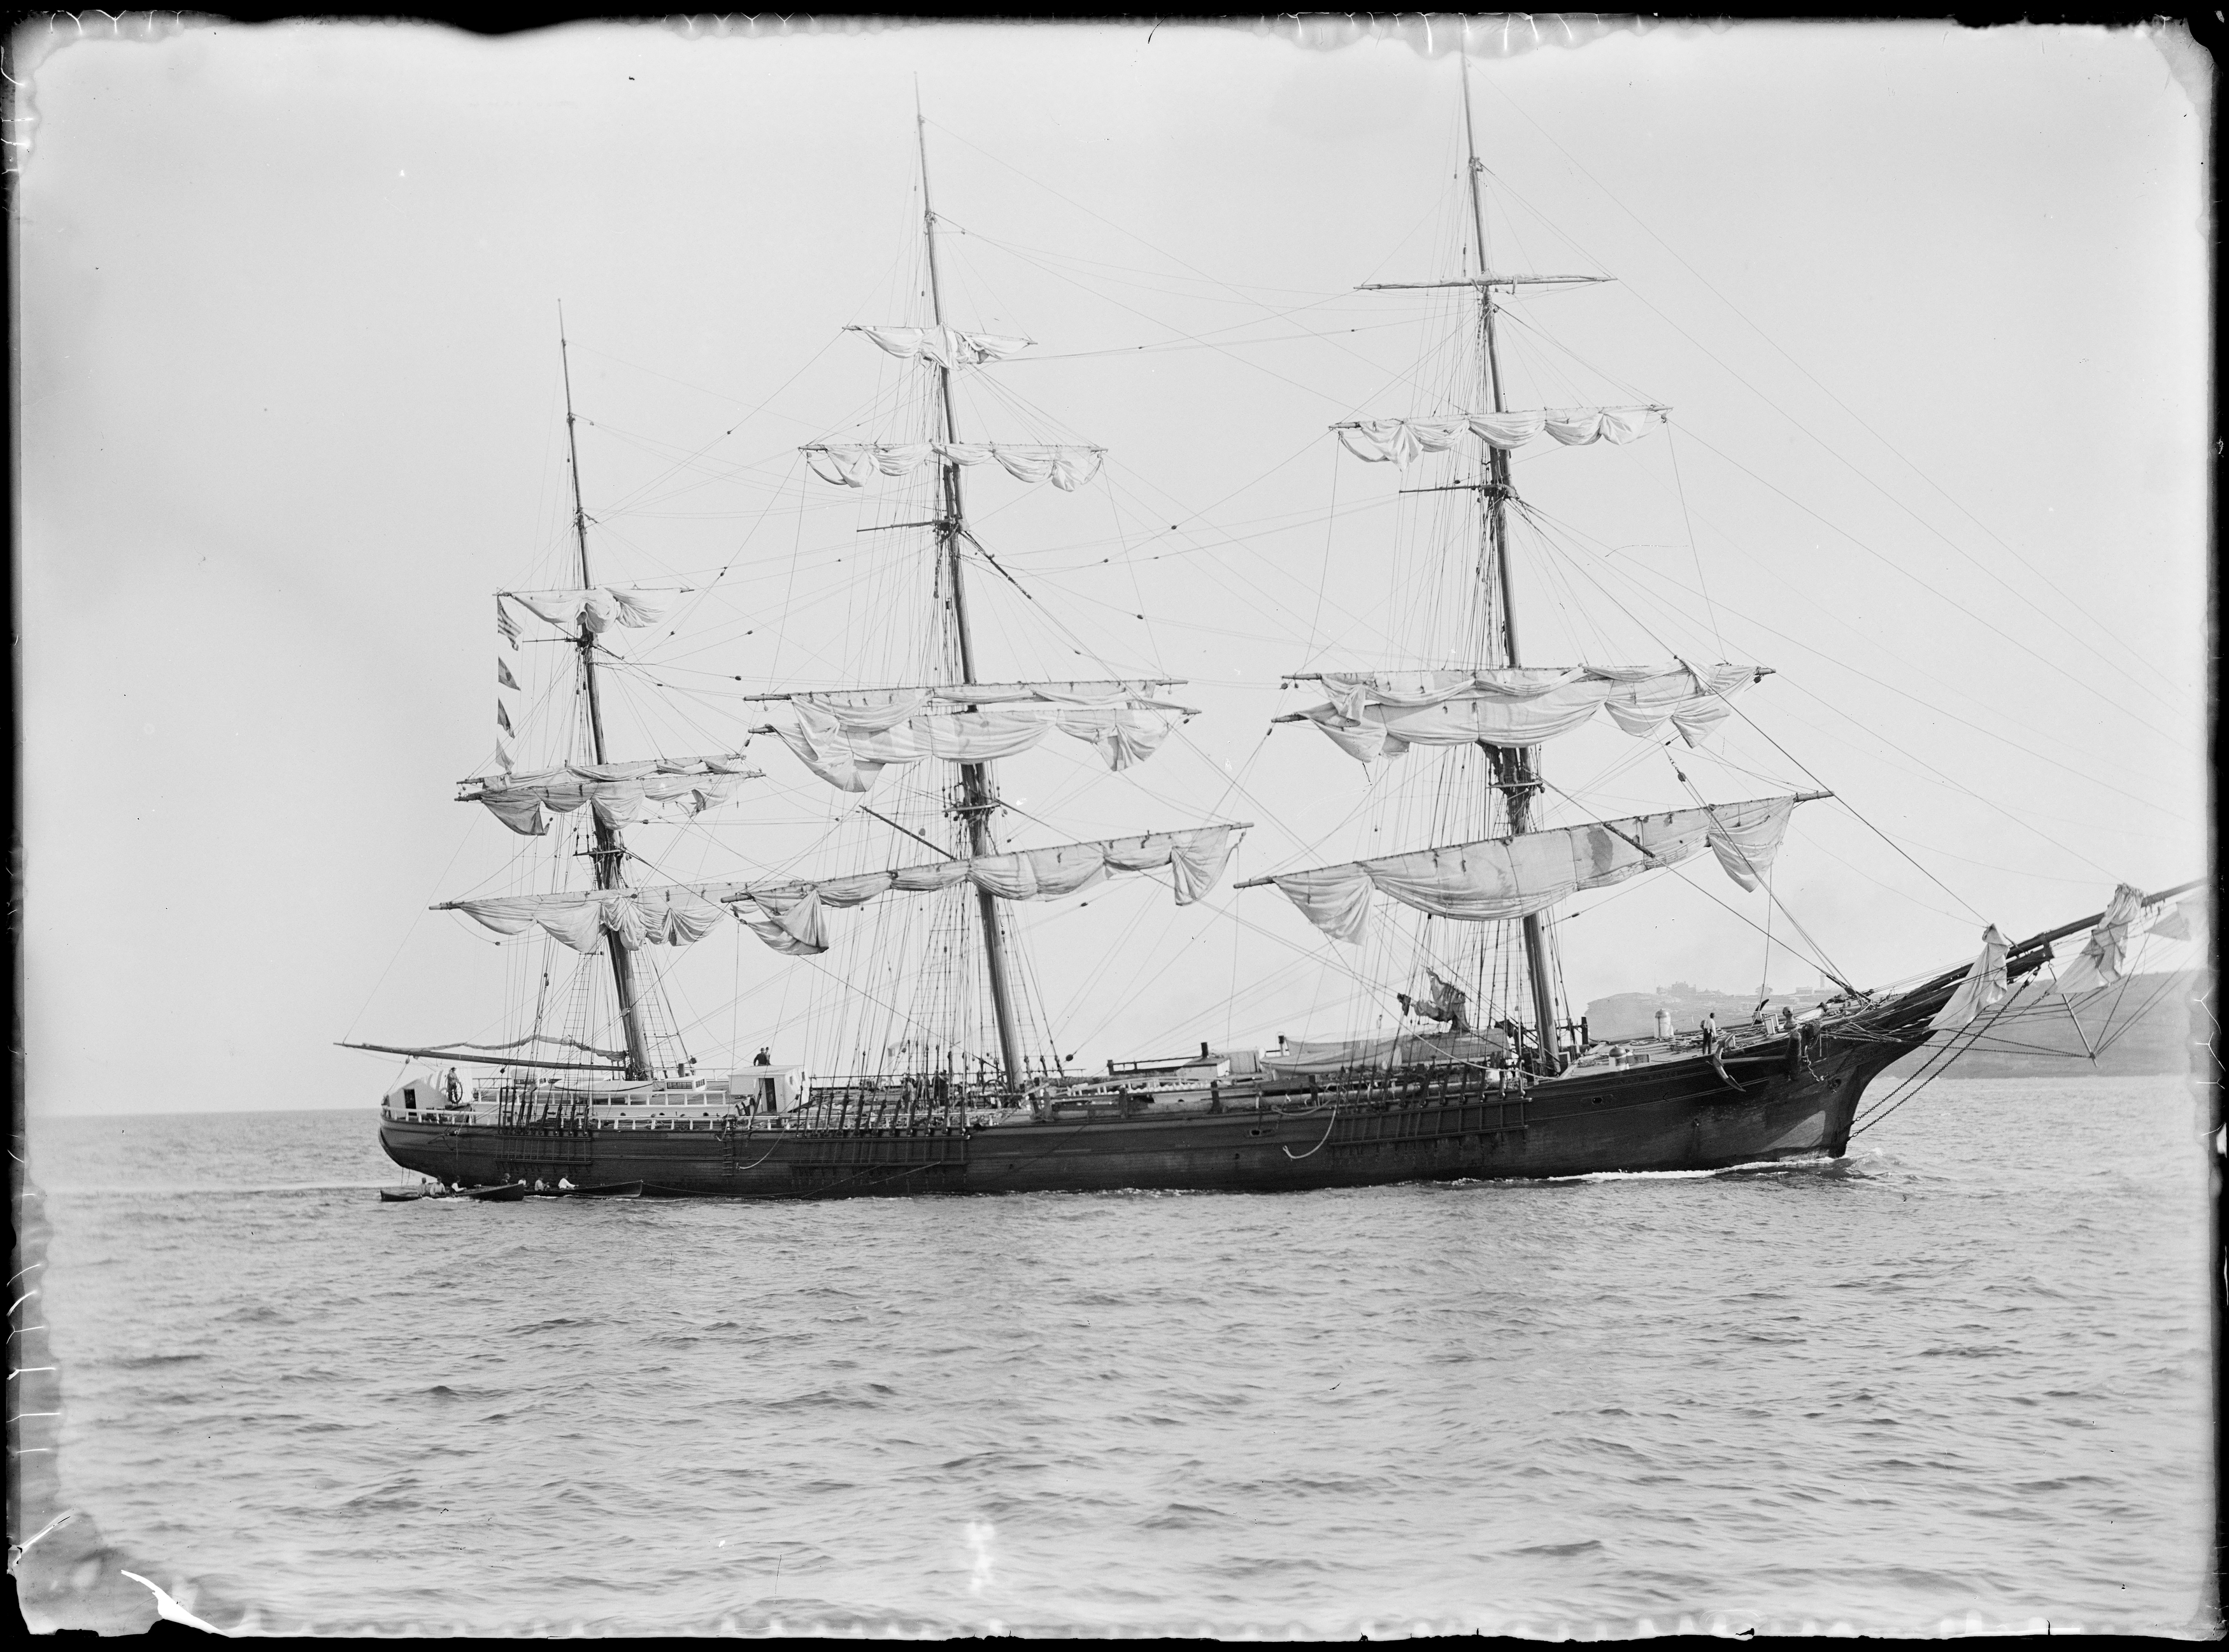 Glass negatives including images of boating, beaches, motoring and houses in the Sydney region, ca 1890-1910, by William Joseph Macpherson